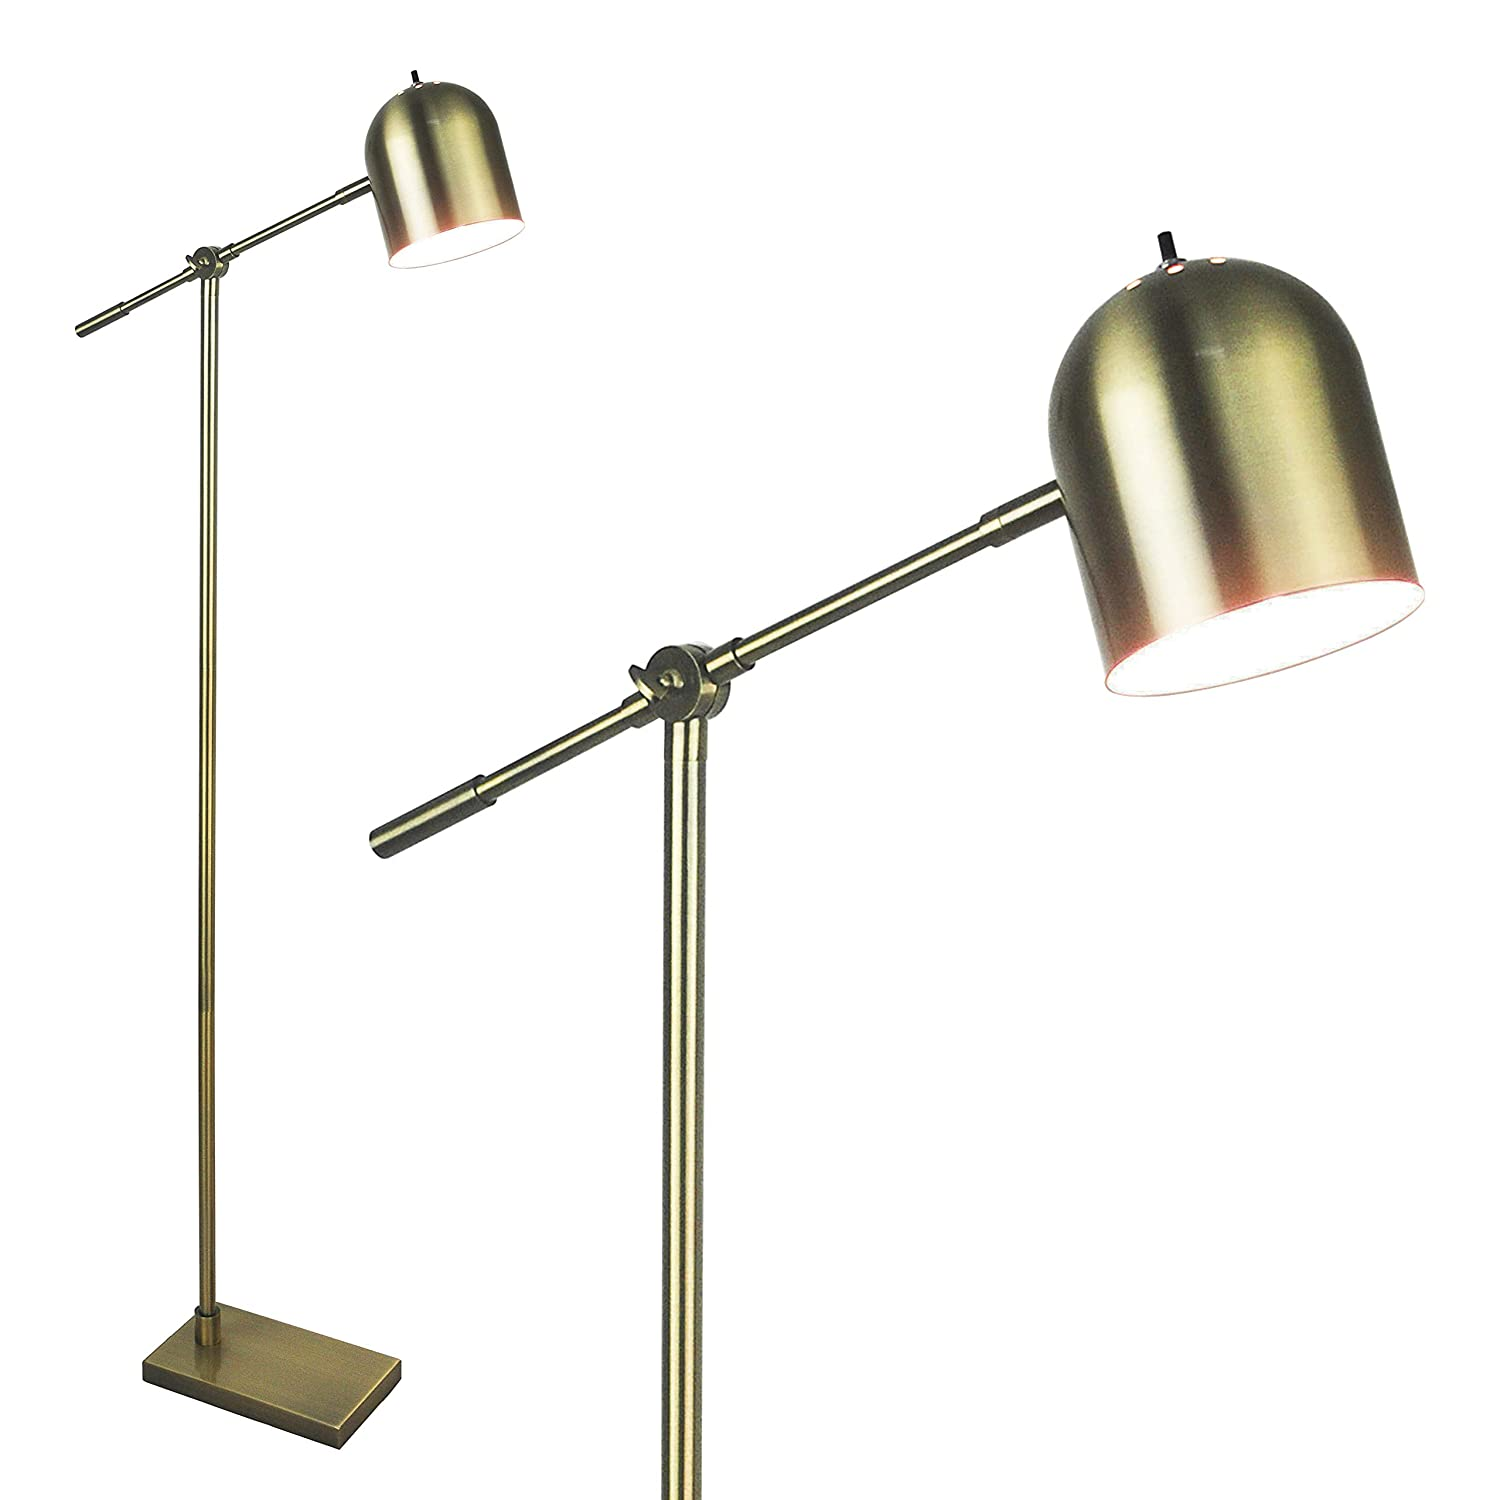 "Light Accents Floor Lamp Adjustable Cantilever Modern Bright Standing Lamp Showroom Quality 59"" Tall Brushed Gold Finish"